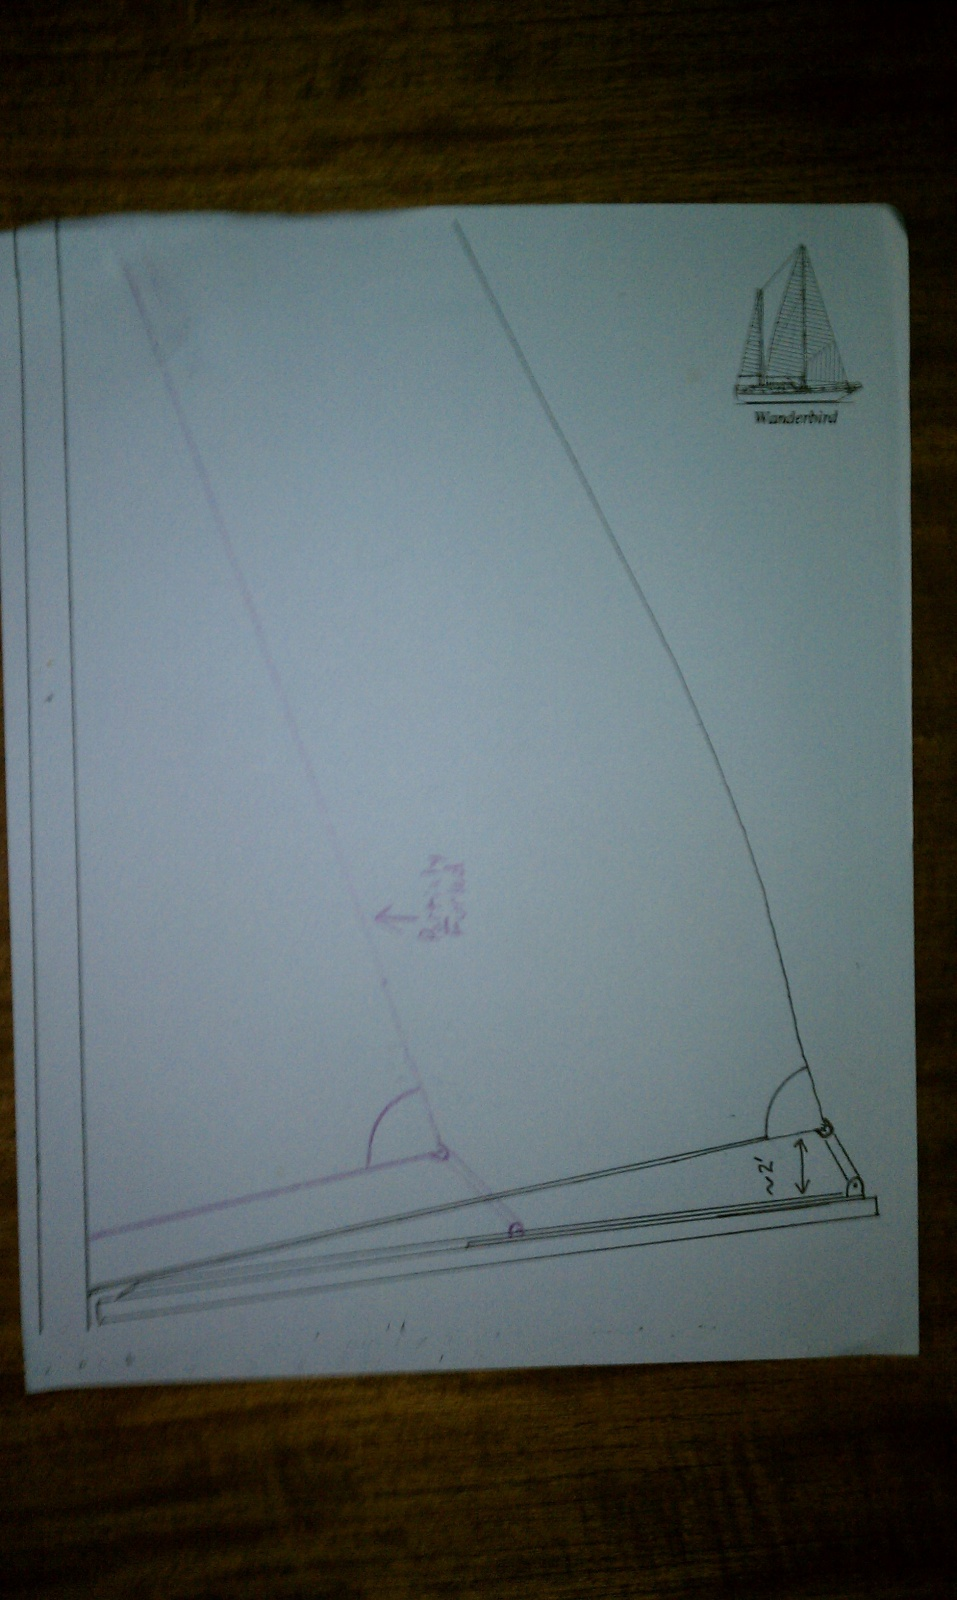 Click image for larger version  Name:sketch 006.jpg Views:109 Size:375.2 KB ID:34280